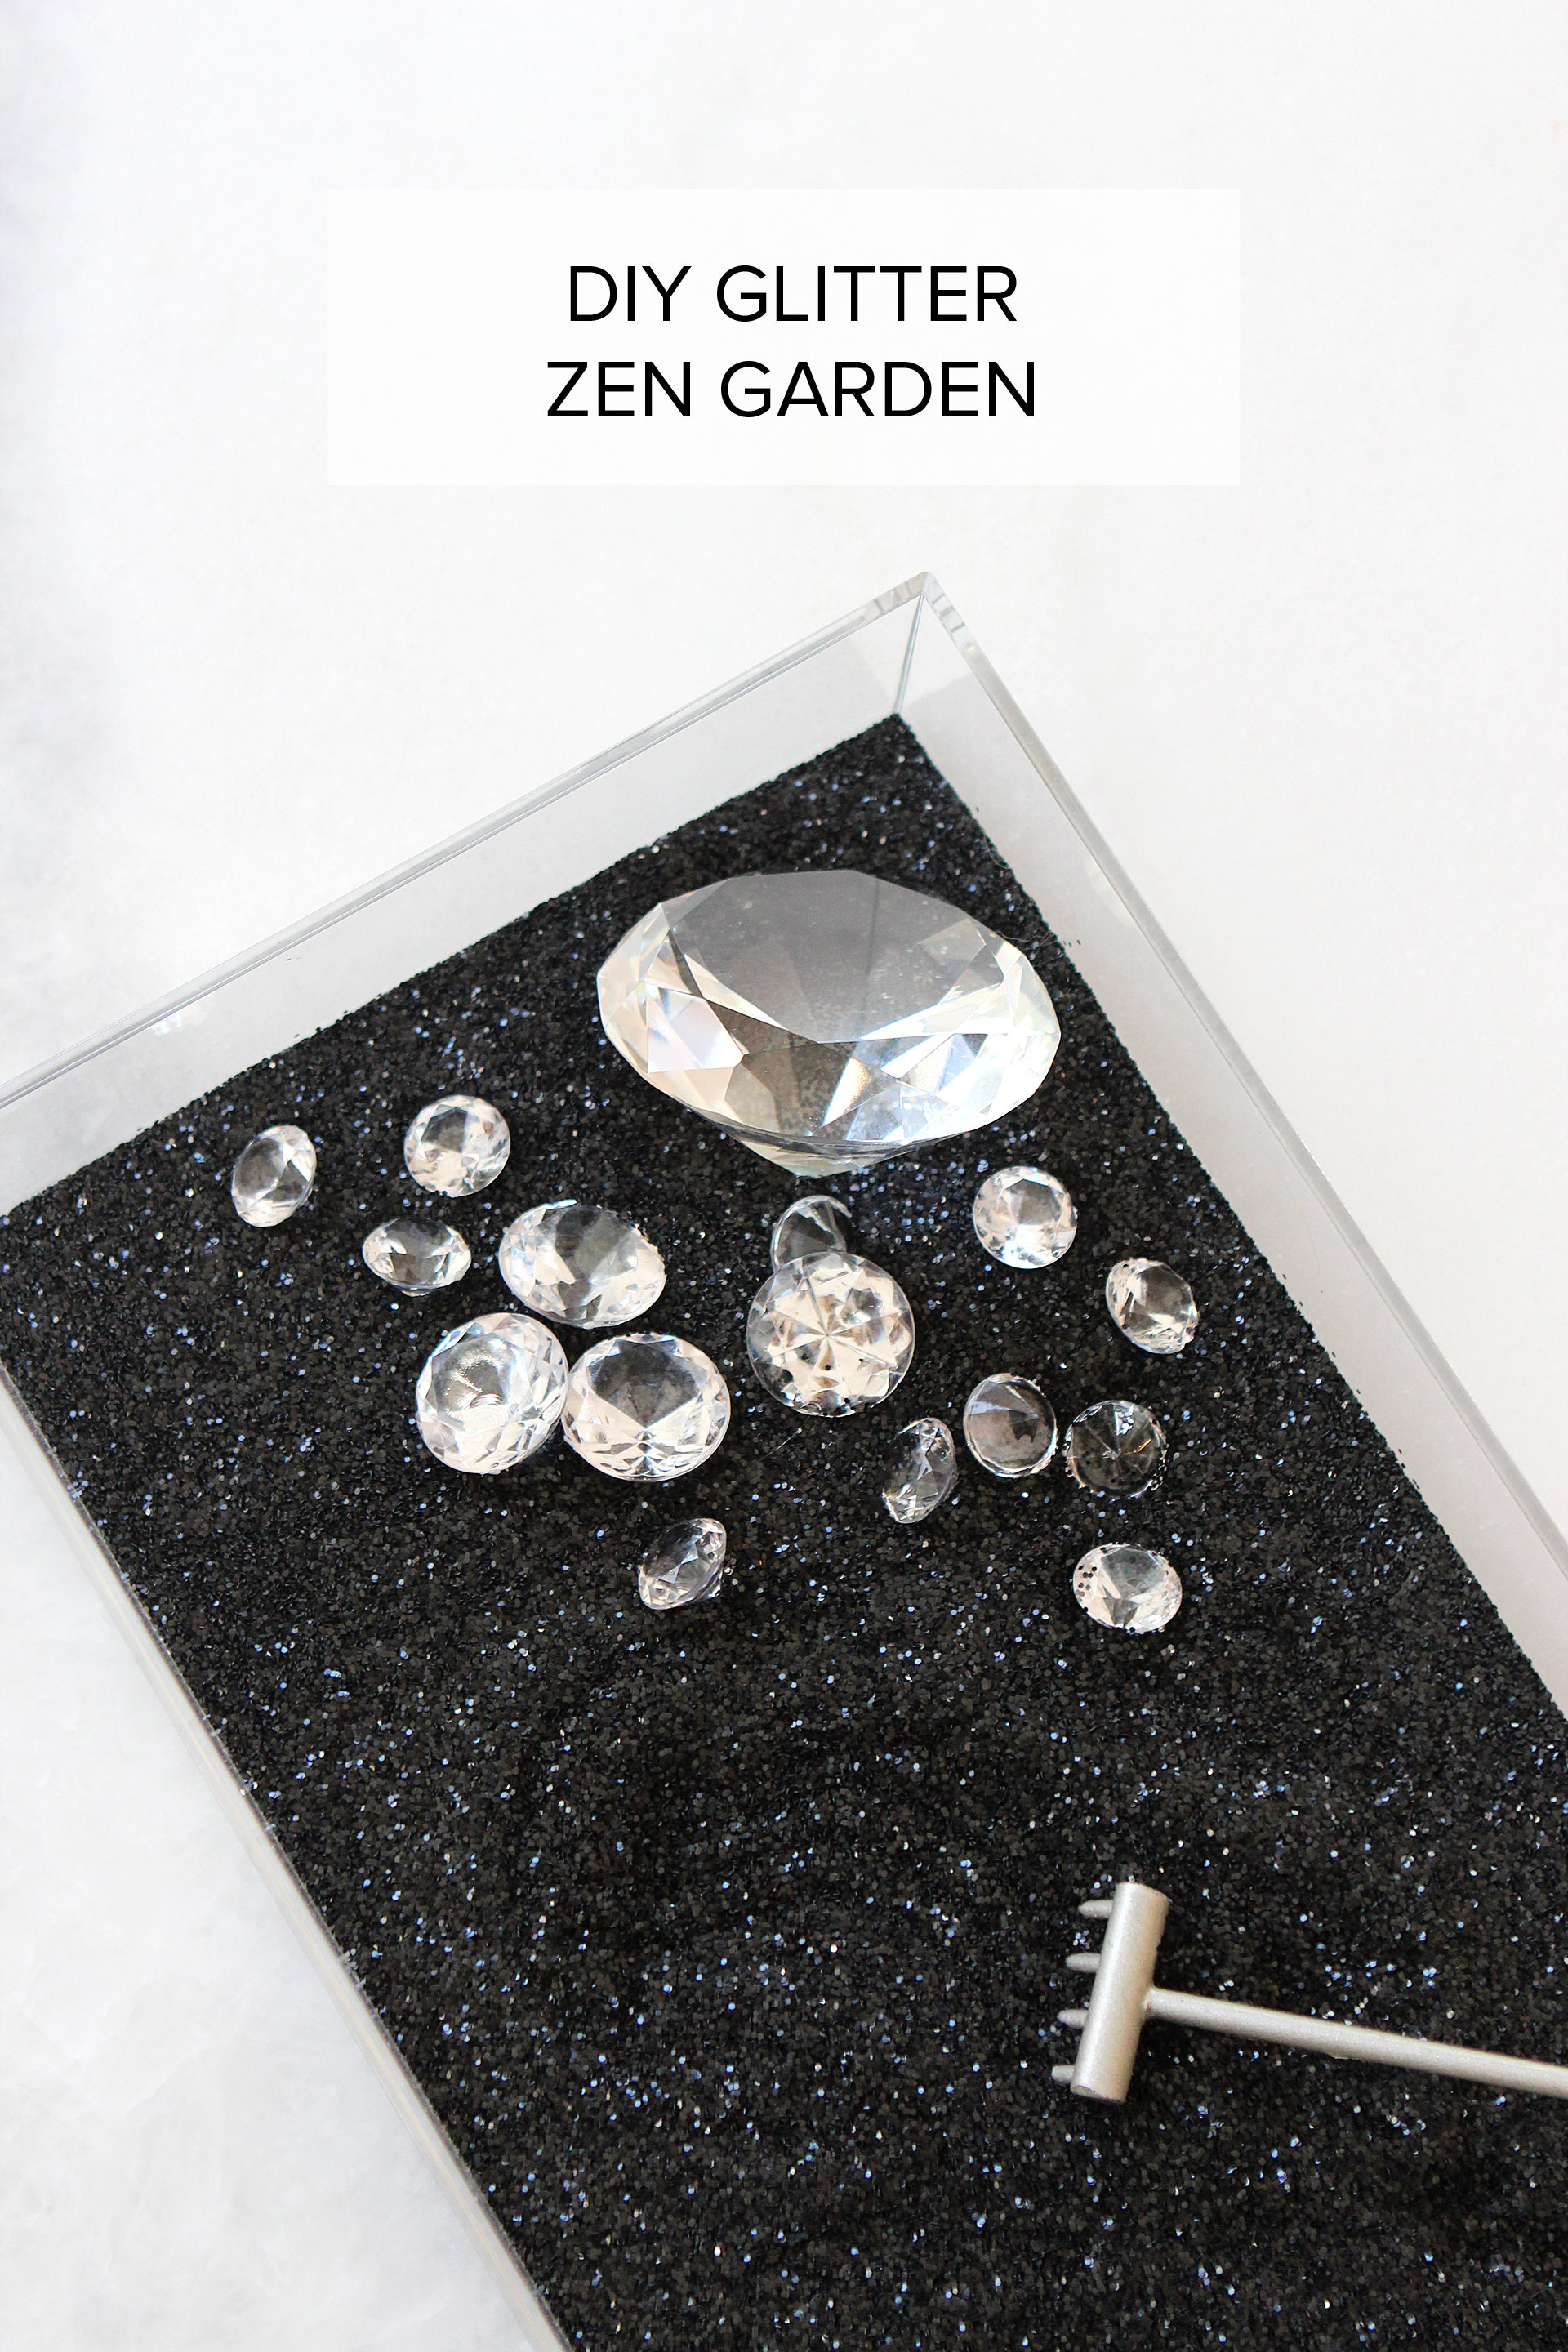 Diy glitter zen garden alexandra adams this diy is more of a put it together yourself than a do it yourself but i think it still qualifies solutioingenieria Gallery